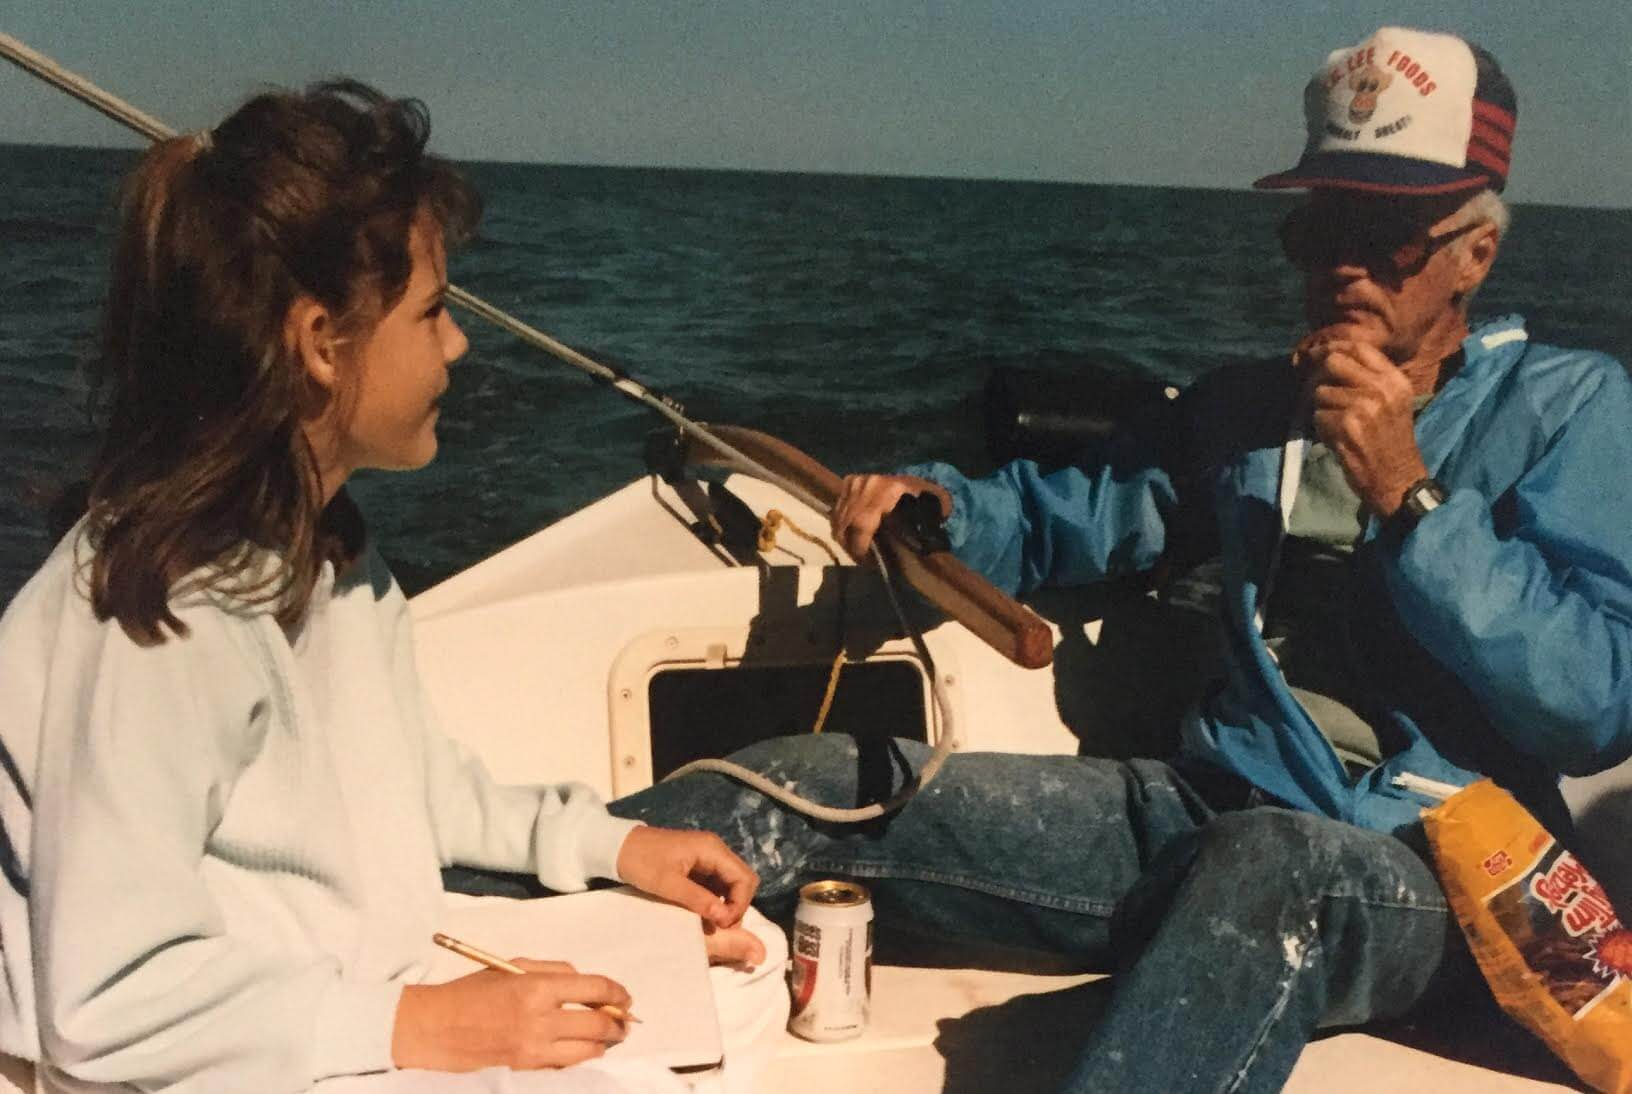 If you dream it, it will happen: A girl sitting in a sailboat together with her father